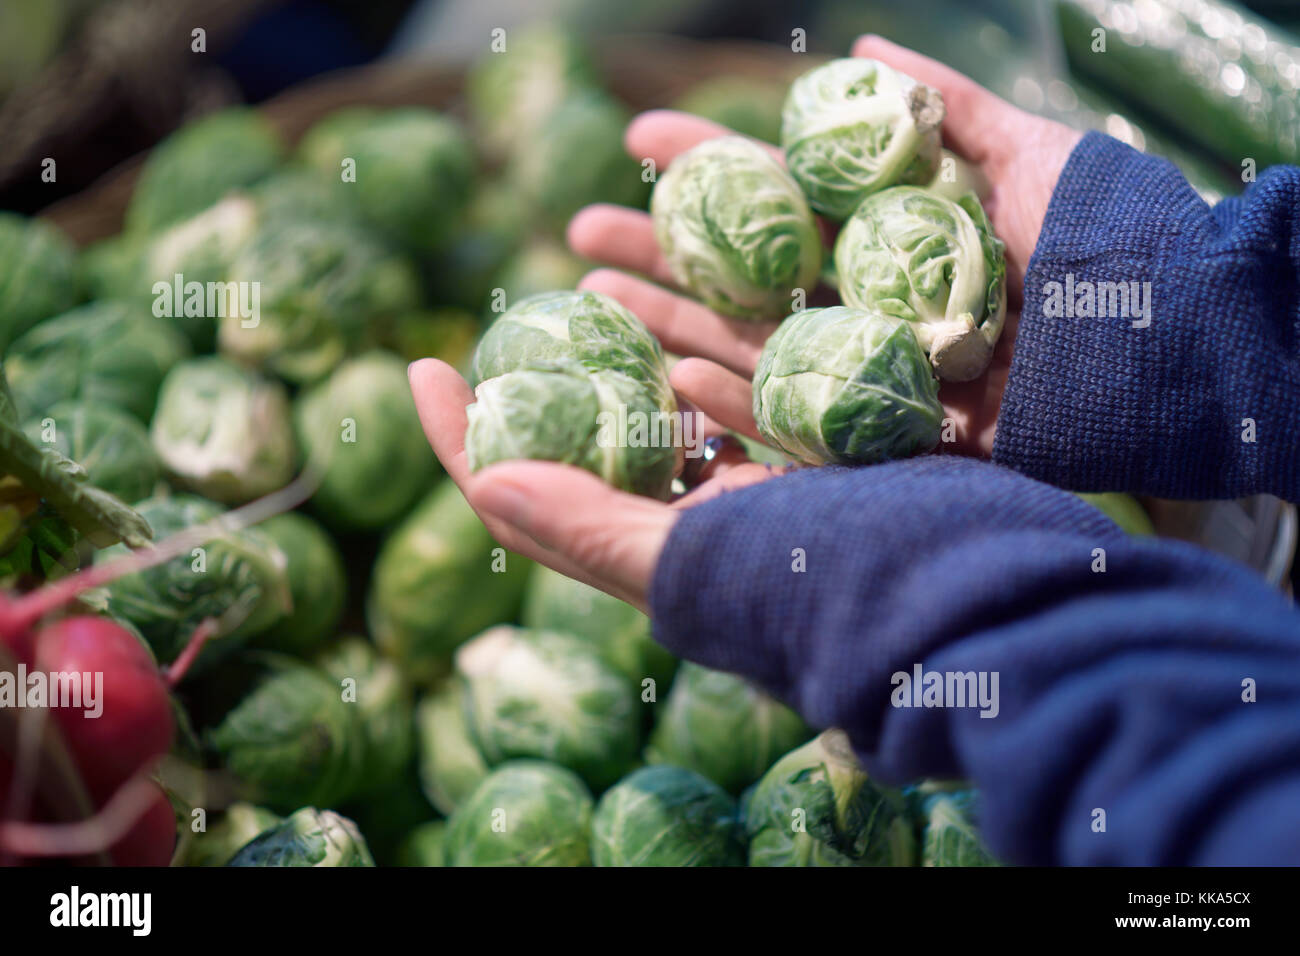 Woman hands with locally grown organic brussels sprouts at a vegetable stall of a farmer's market grocery store Stock Photo